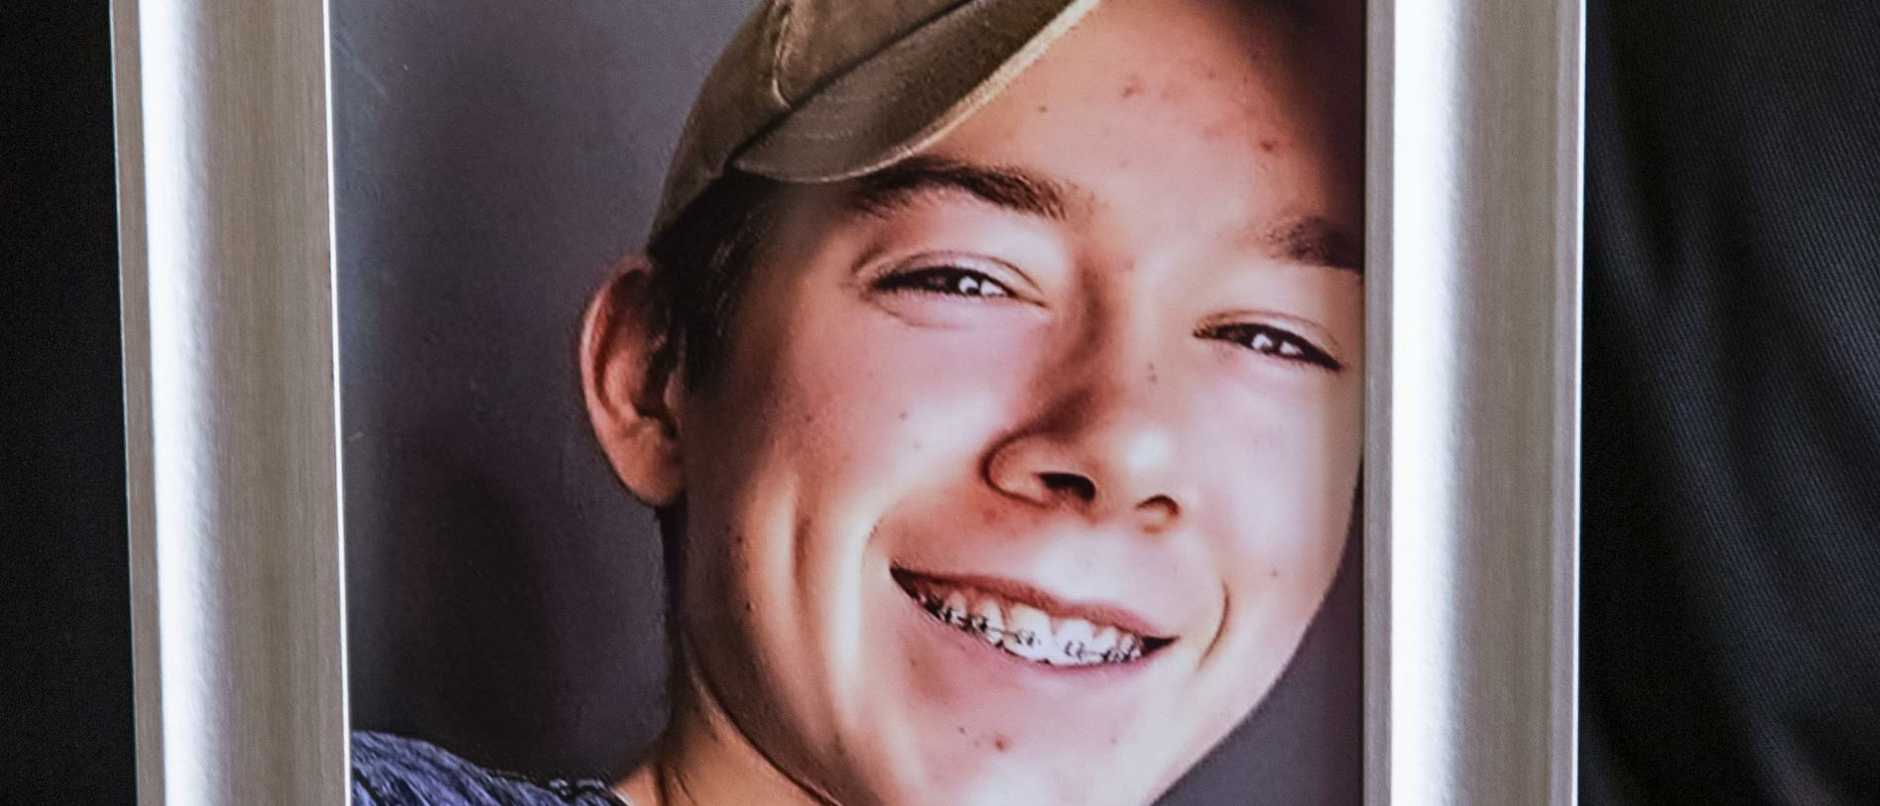 One day Jonah Waterson went for a ride and never came home. Now his family wants us to have the conversation we all need to have with our children.